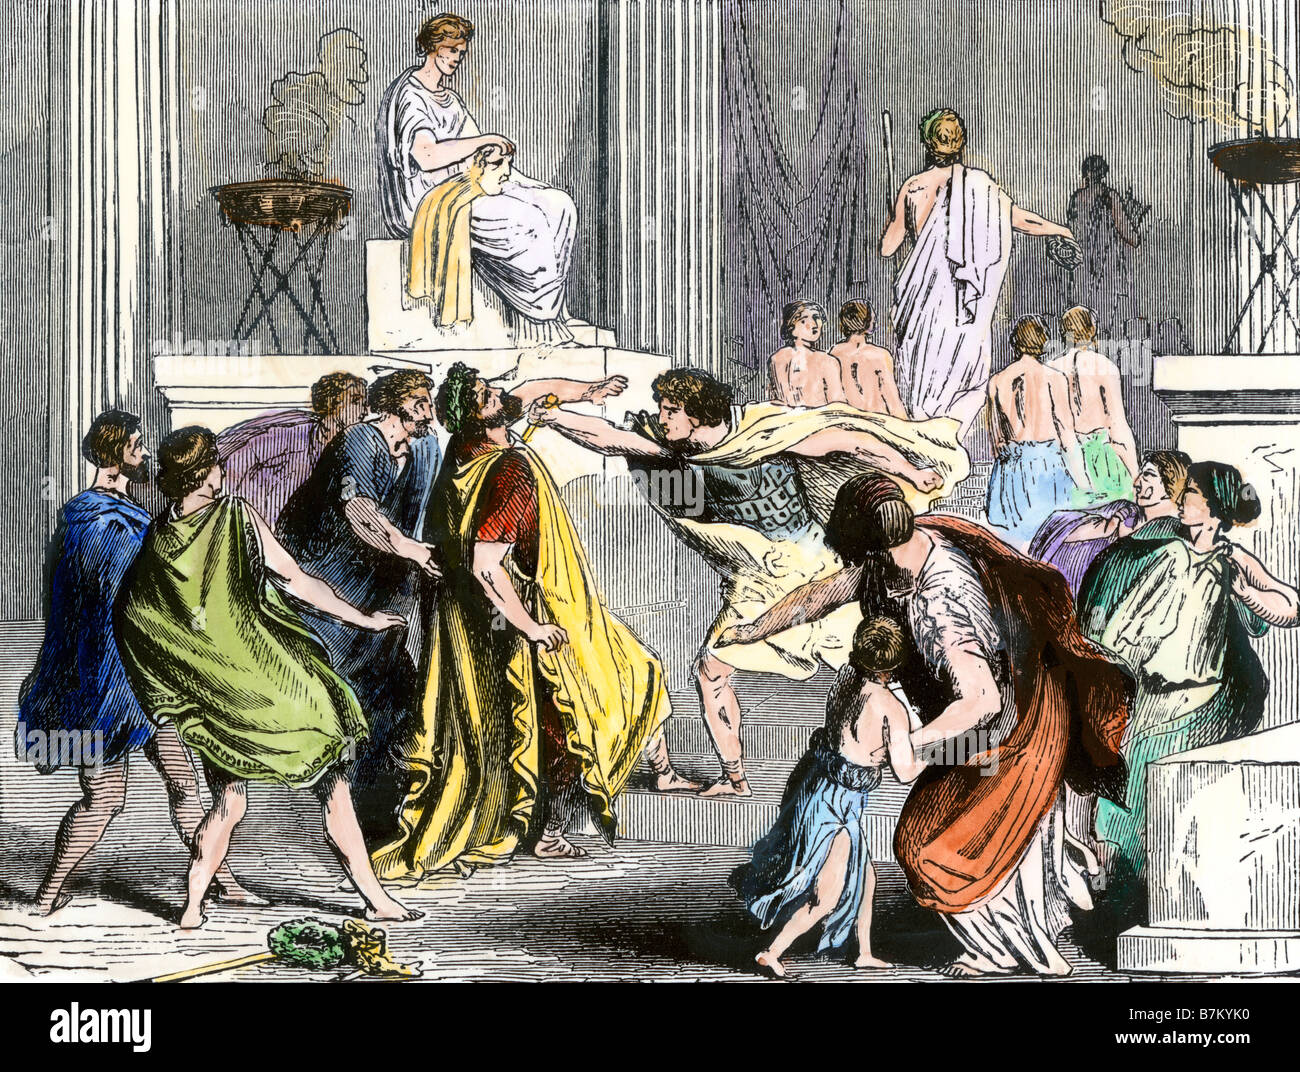 Assasination of King Philip of Macedon father of Alexander the Great 336 BC - Stock Image